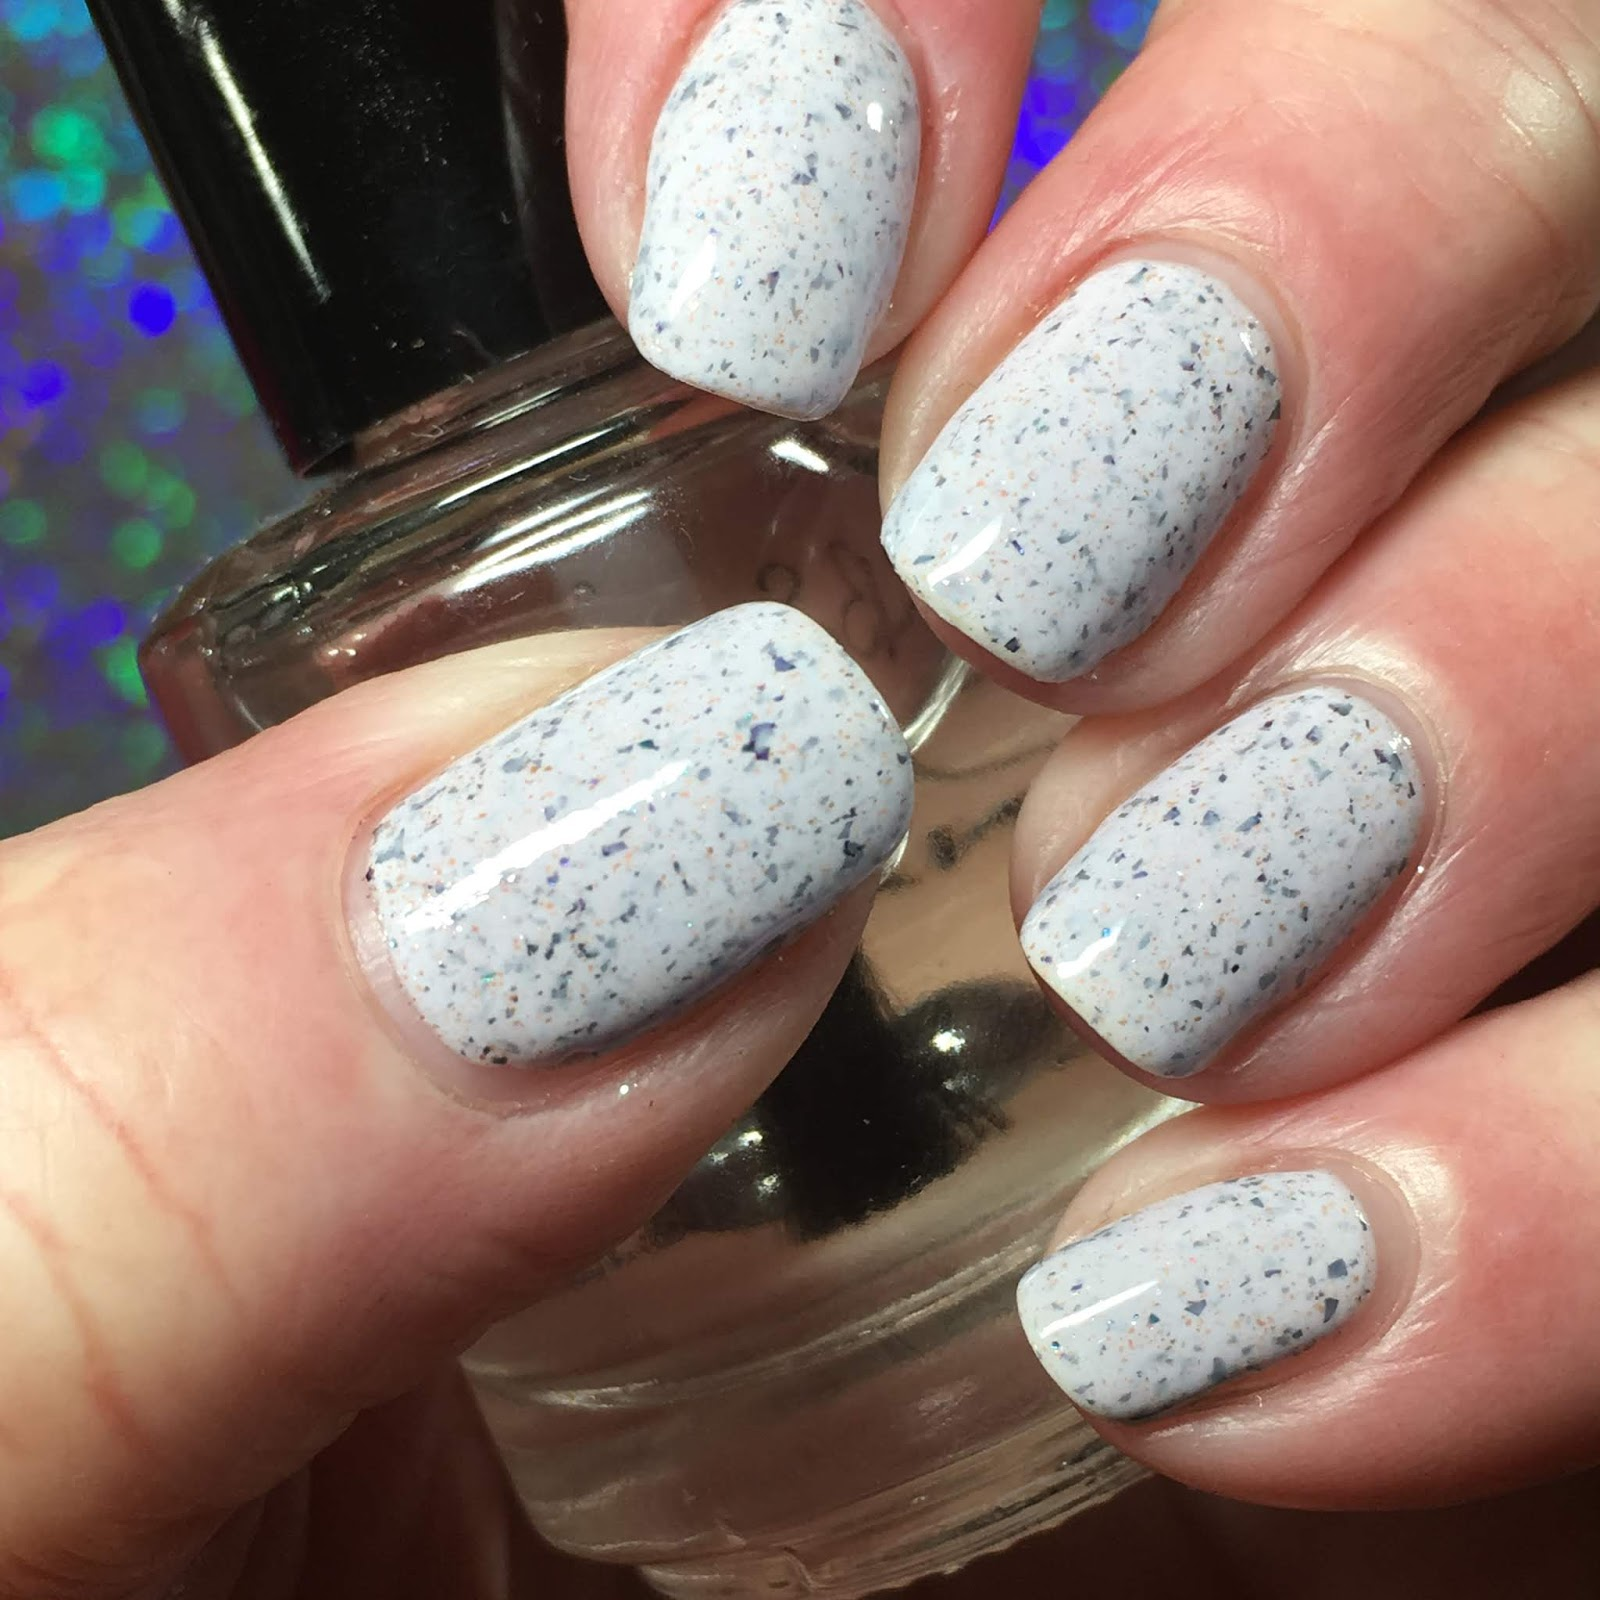 I Had Made Stamper Decals From Marianne Nails N 56 Using Mdu 2 And Konad Red Special Polish Lied To All Fingers Except Ring Finger